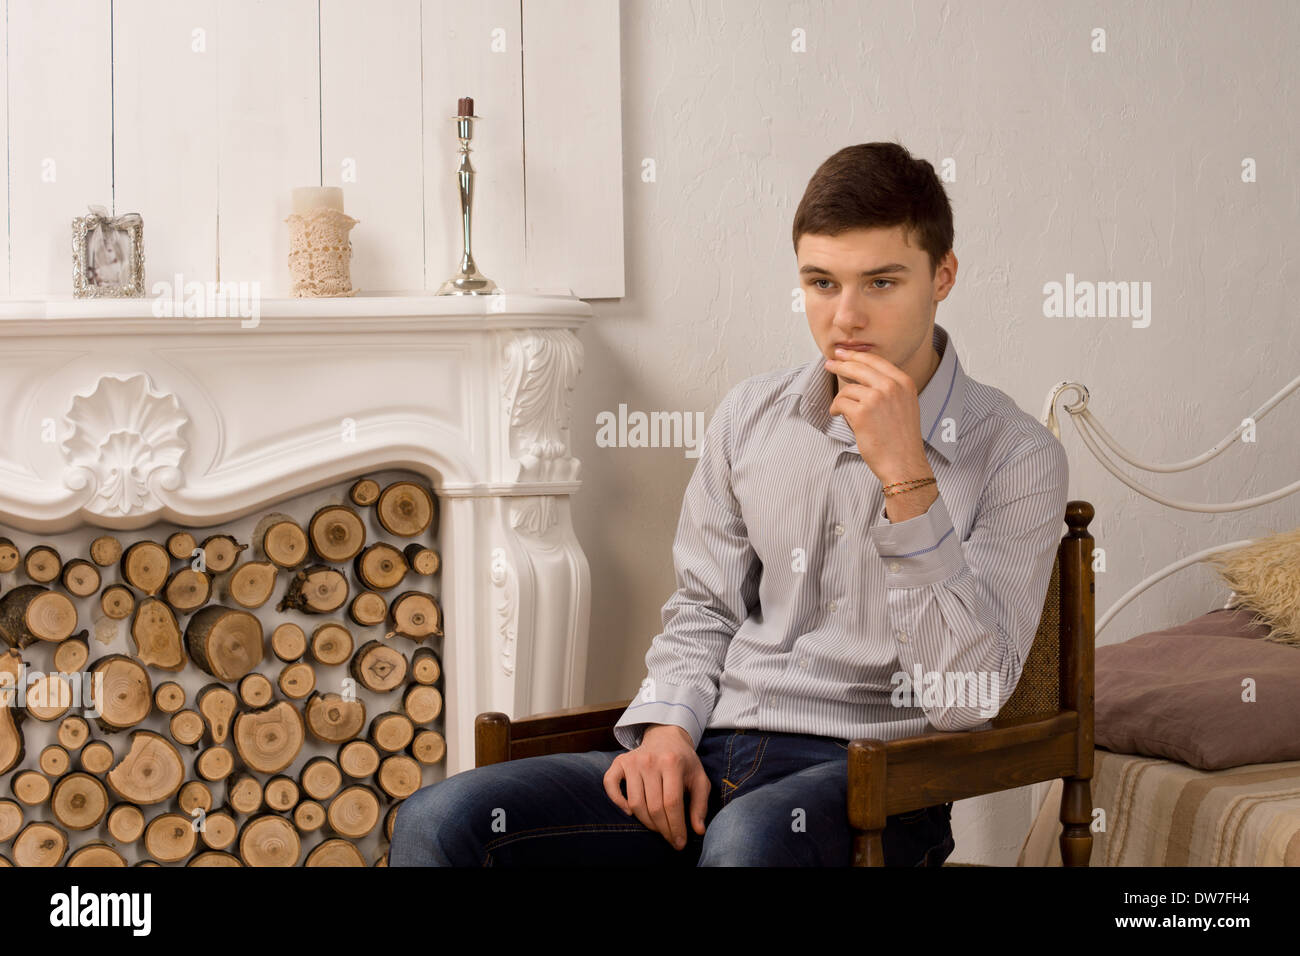 Worried young man deep in thought sitting in a wooden armchair with his hand to his chin staring gloomily at the floor - Stock Image